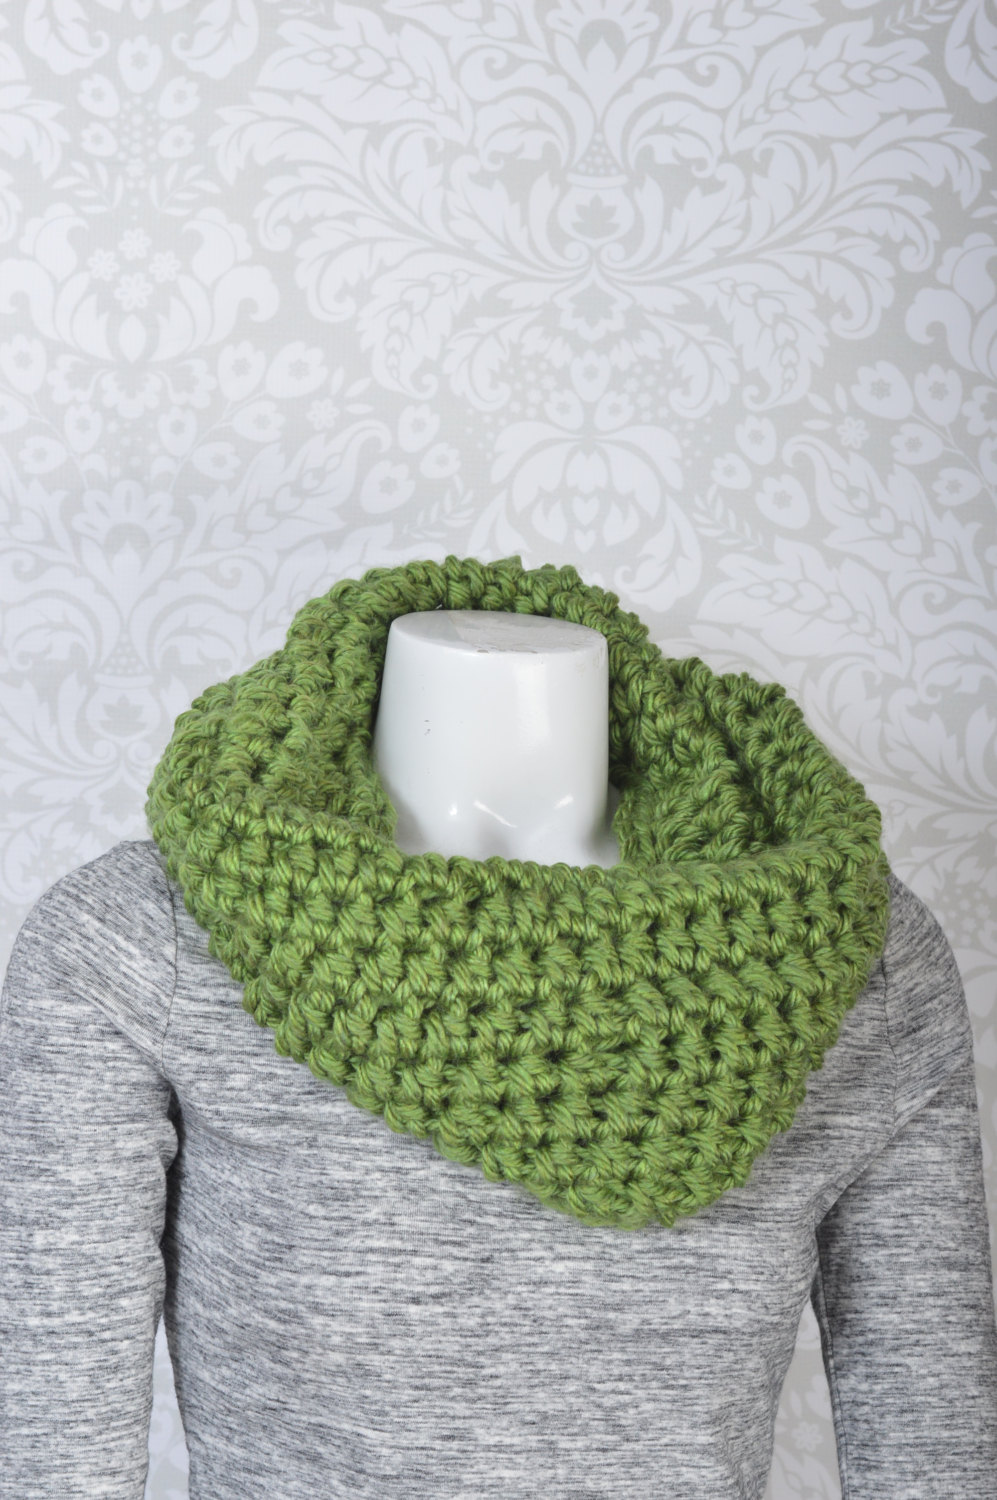 2-Way Cowl Snood Green · PiperAndStone · Online Store Powered by ...